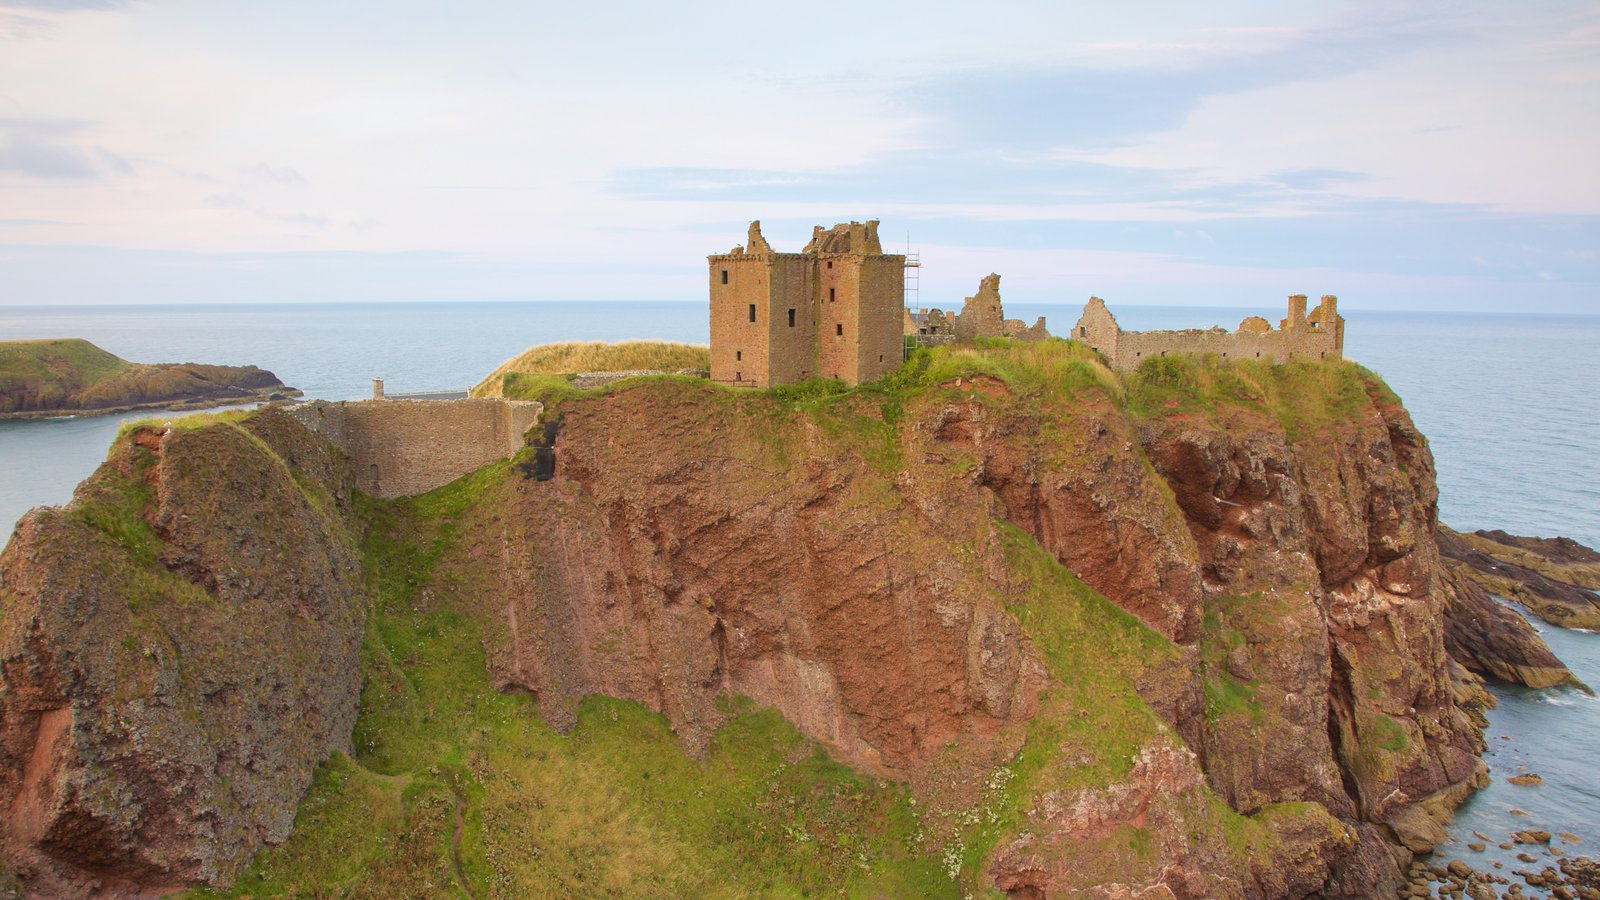 Dunnottar Castle featuring chateau or palace